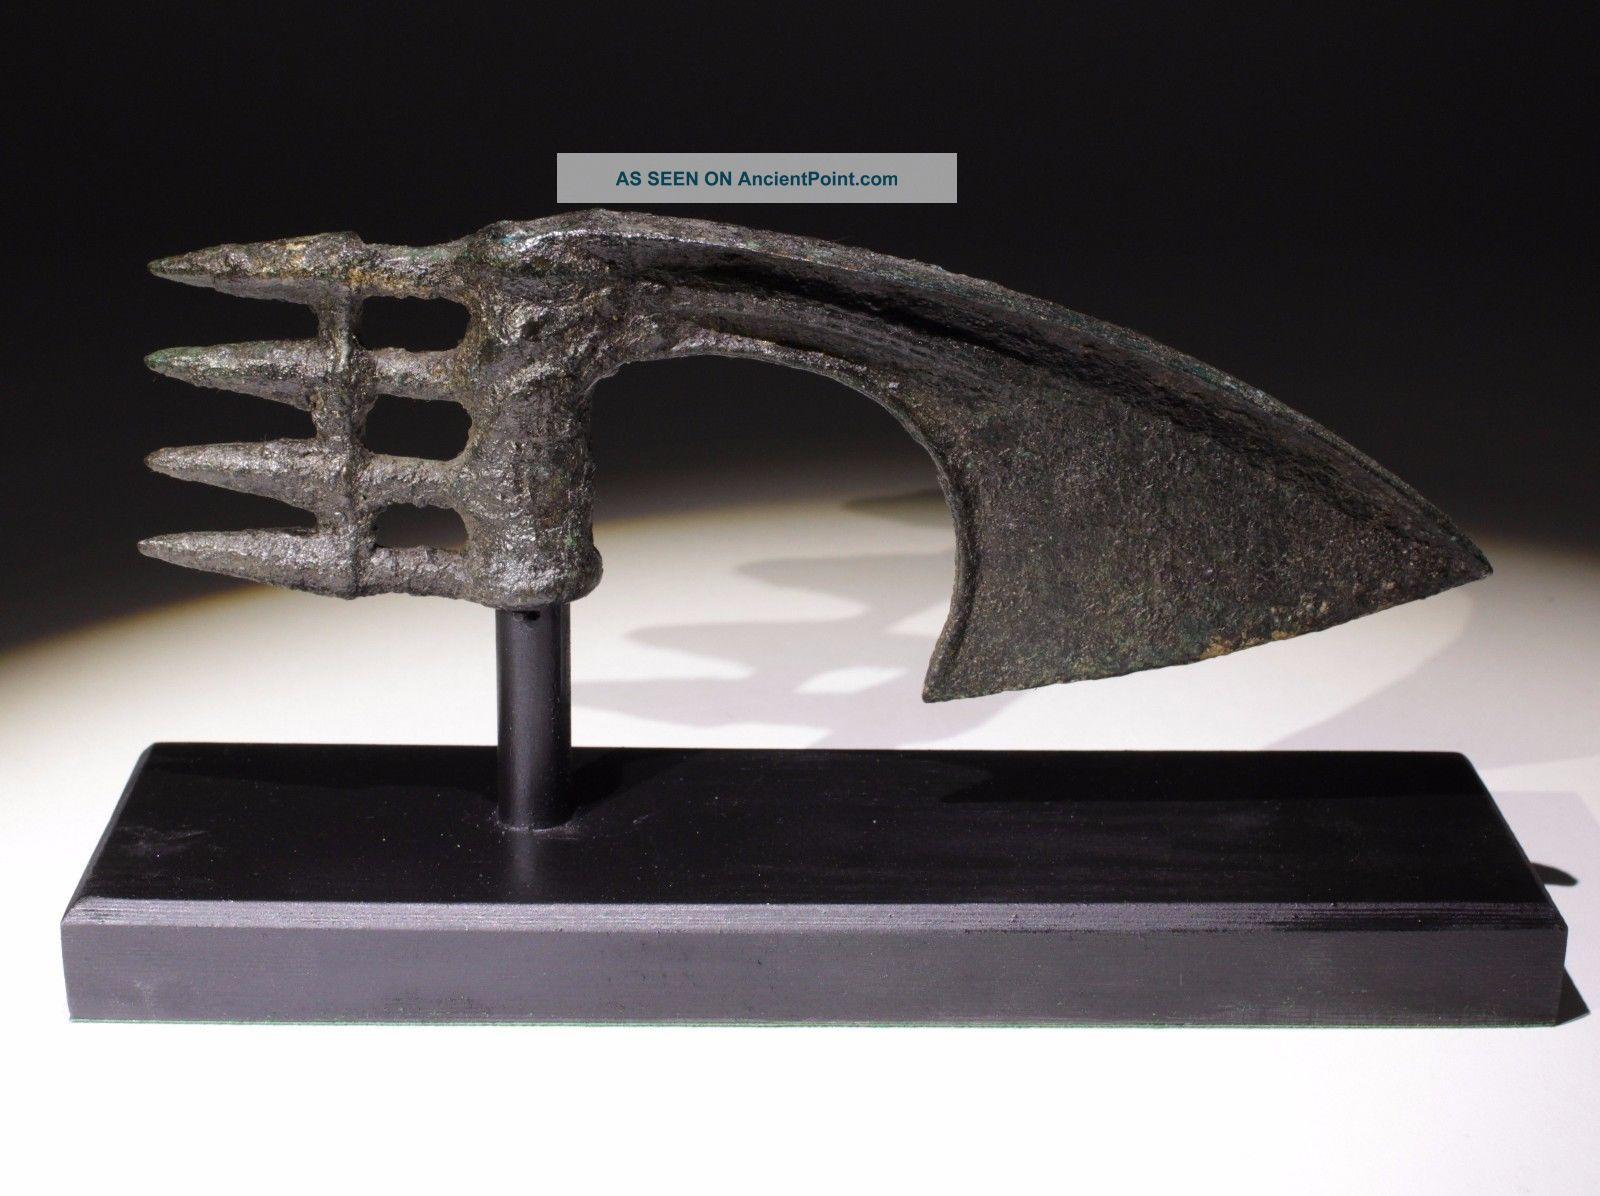 Quality Bronze Age Spike Butted Axe Head Luristan,  Persia 1200 - 1000bc 02 Near Eastern photo